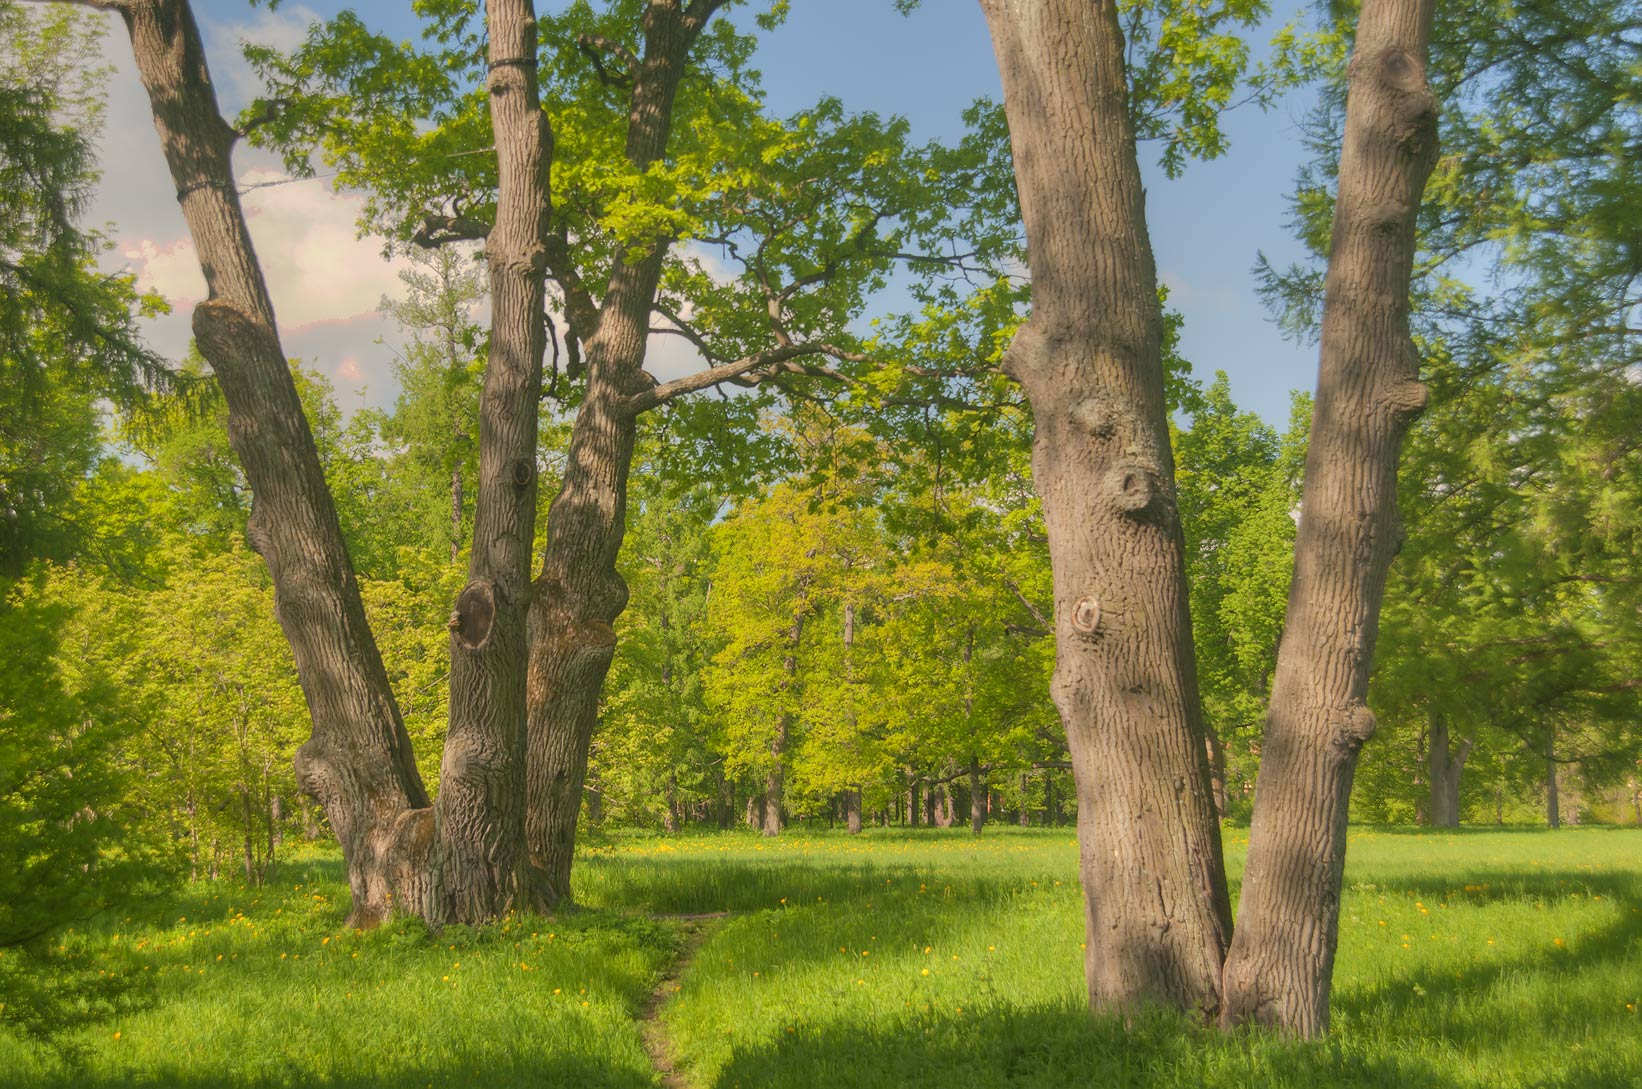 Trees in Ekaterininsky Park. Pushkin (former...south from St.Petersburg, Russia